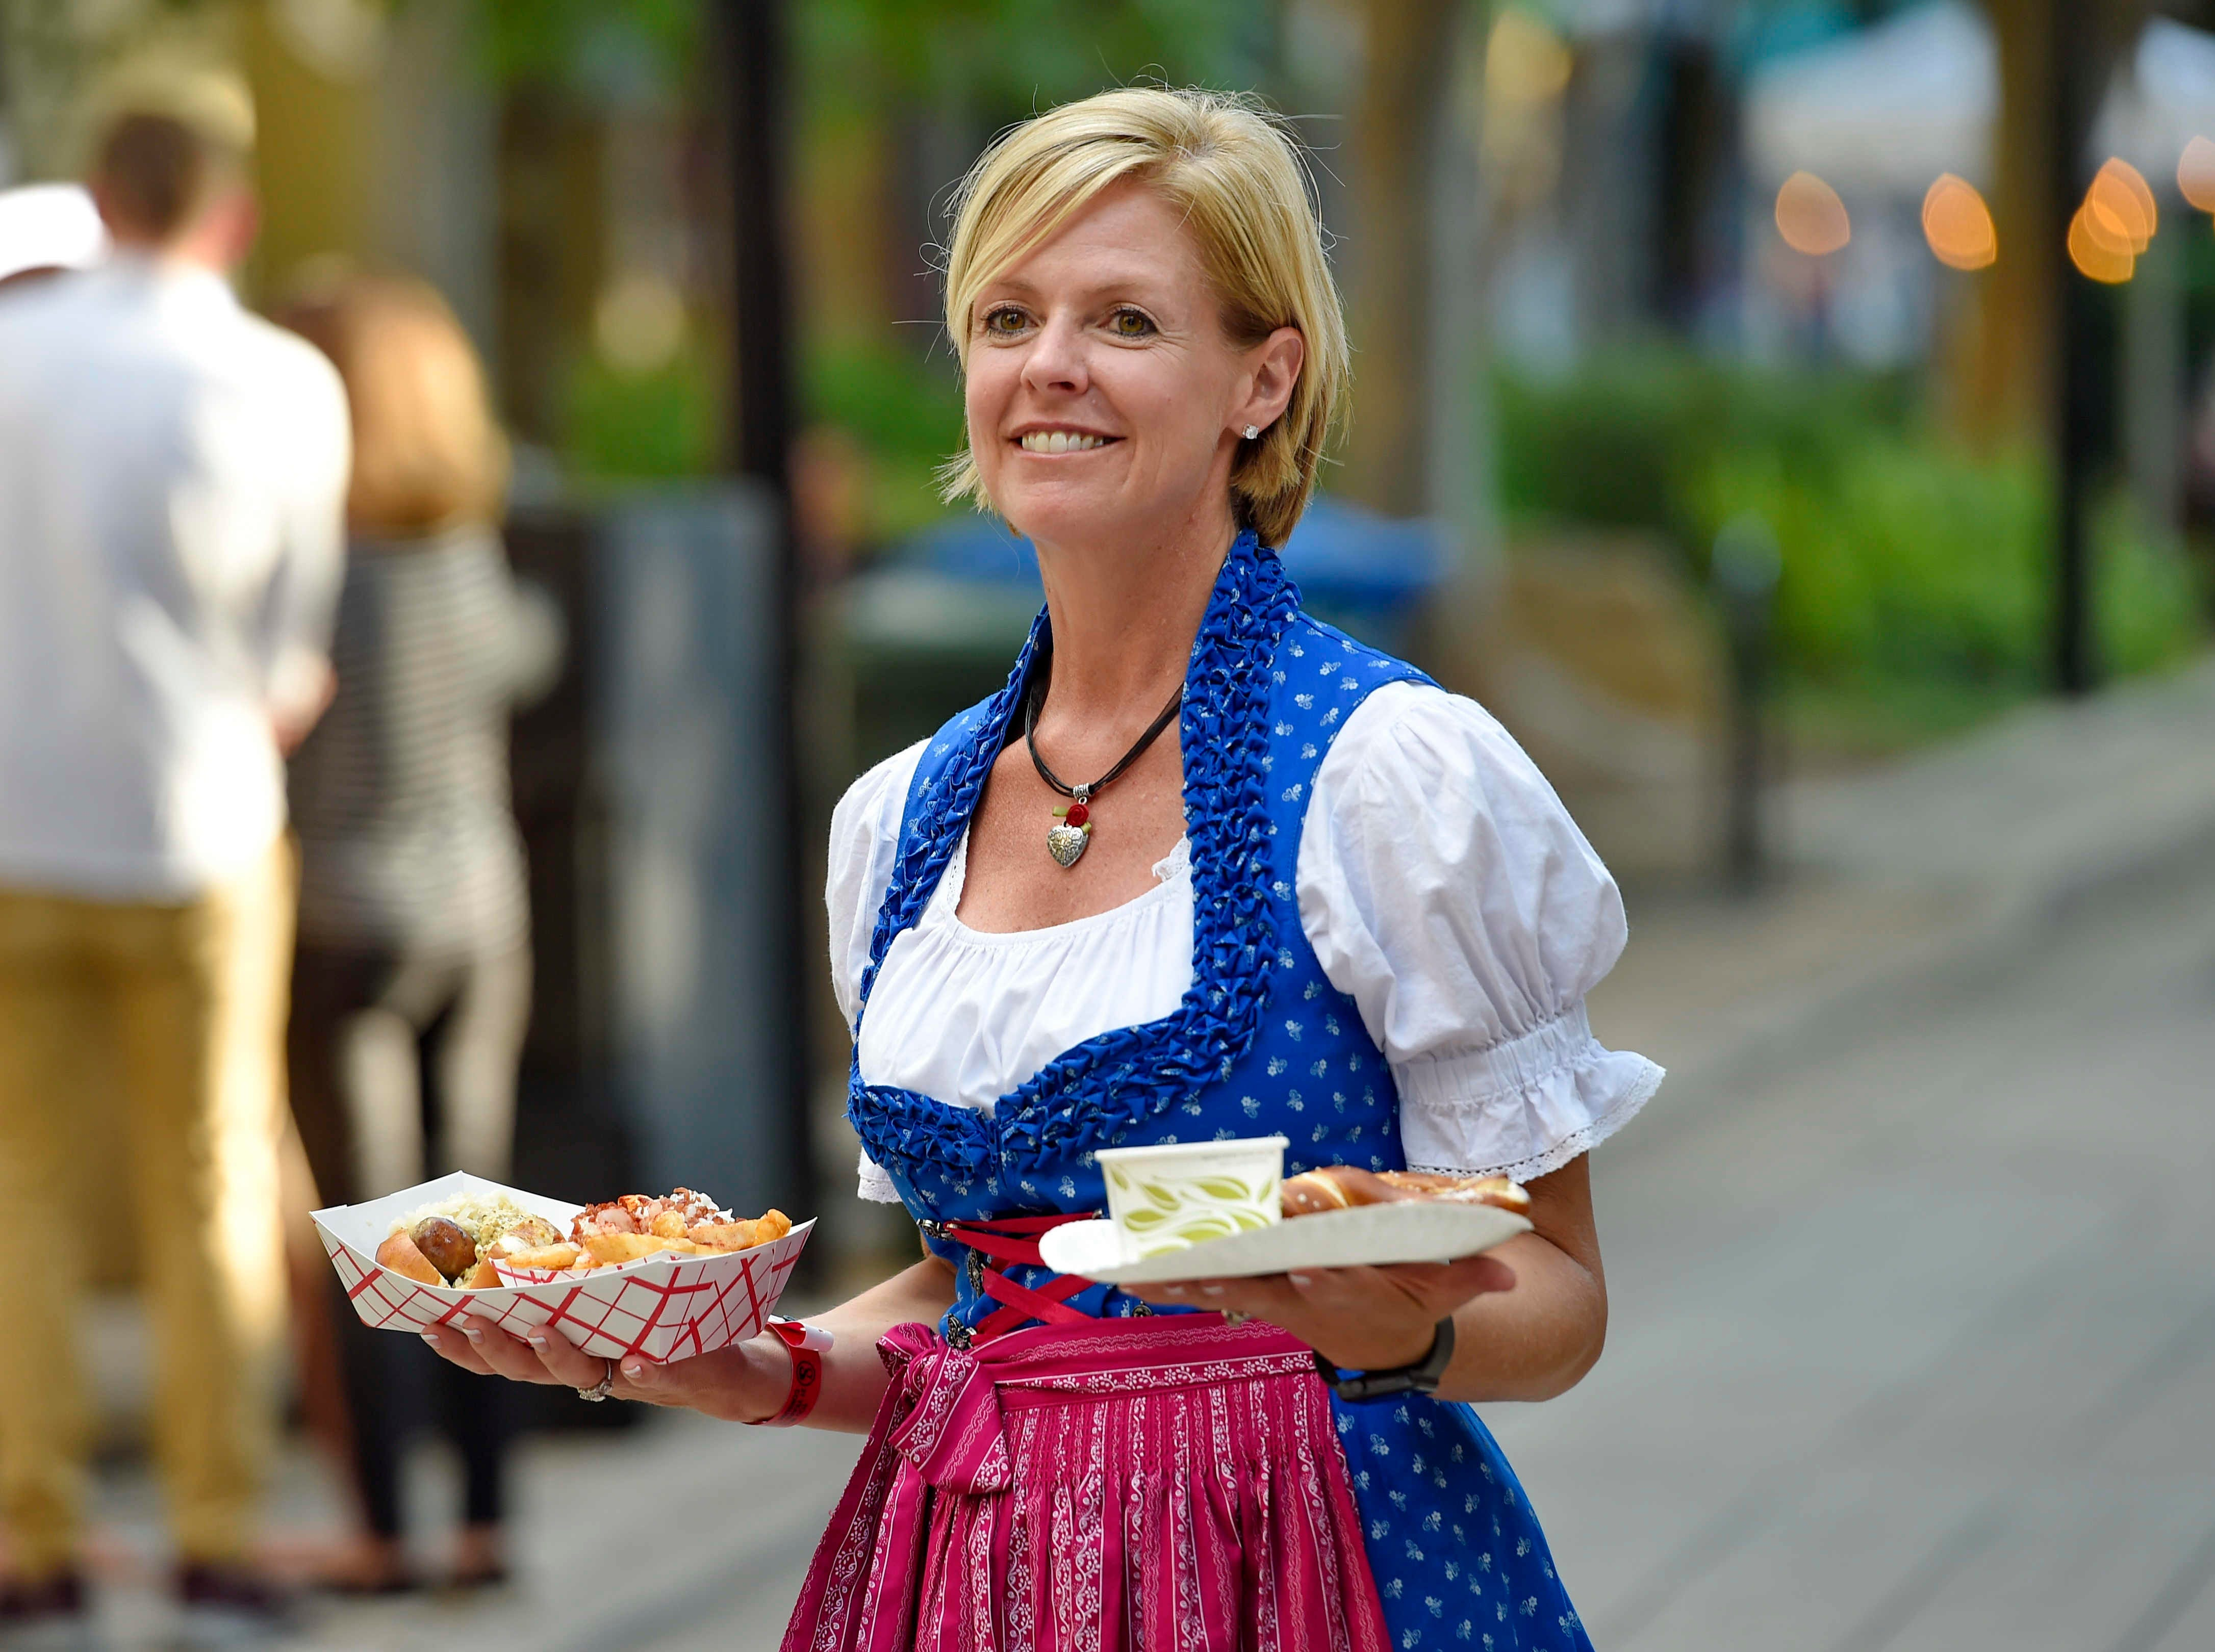 Heather Meadors of Auro Hotels, carries plates of German food during Oktoberfest,  which kicked off at NOMA Square in downtown Greenville Thursday, Oct. 4,  2018.